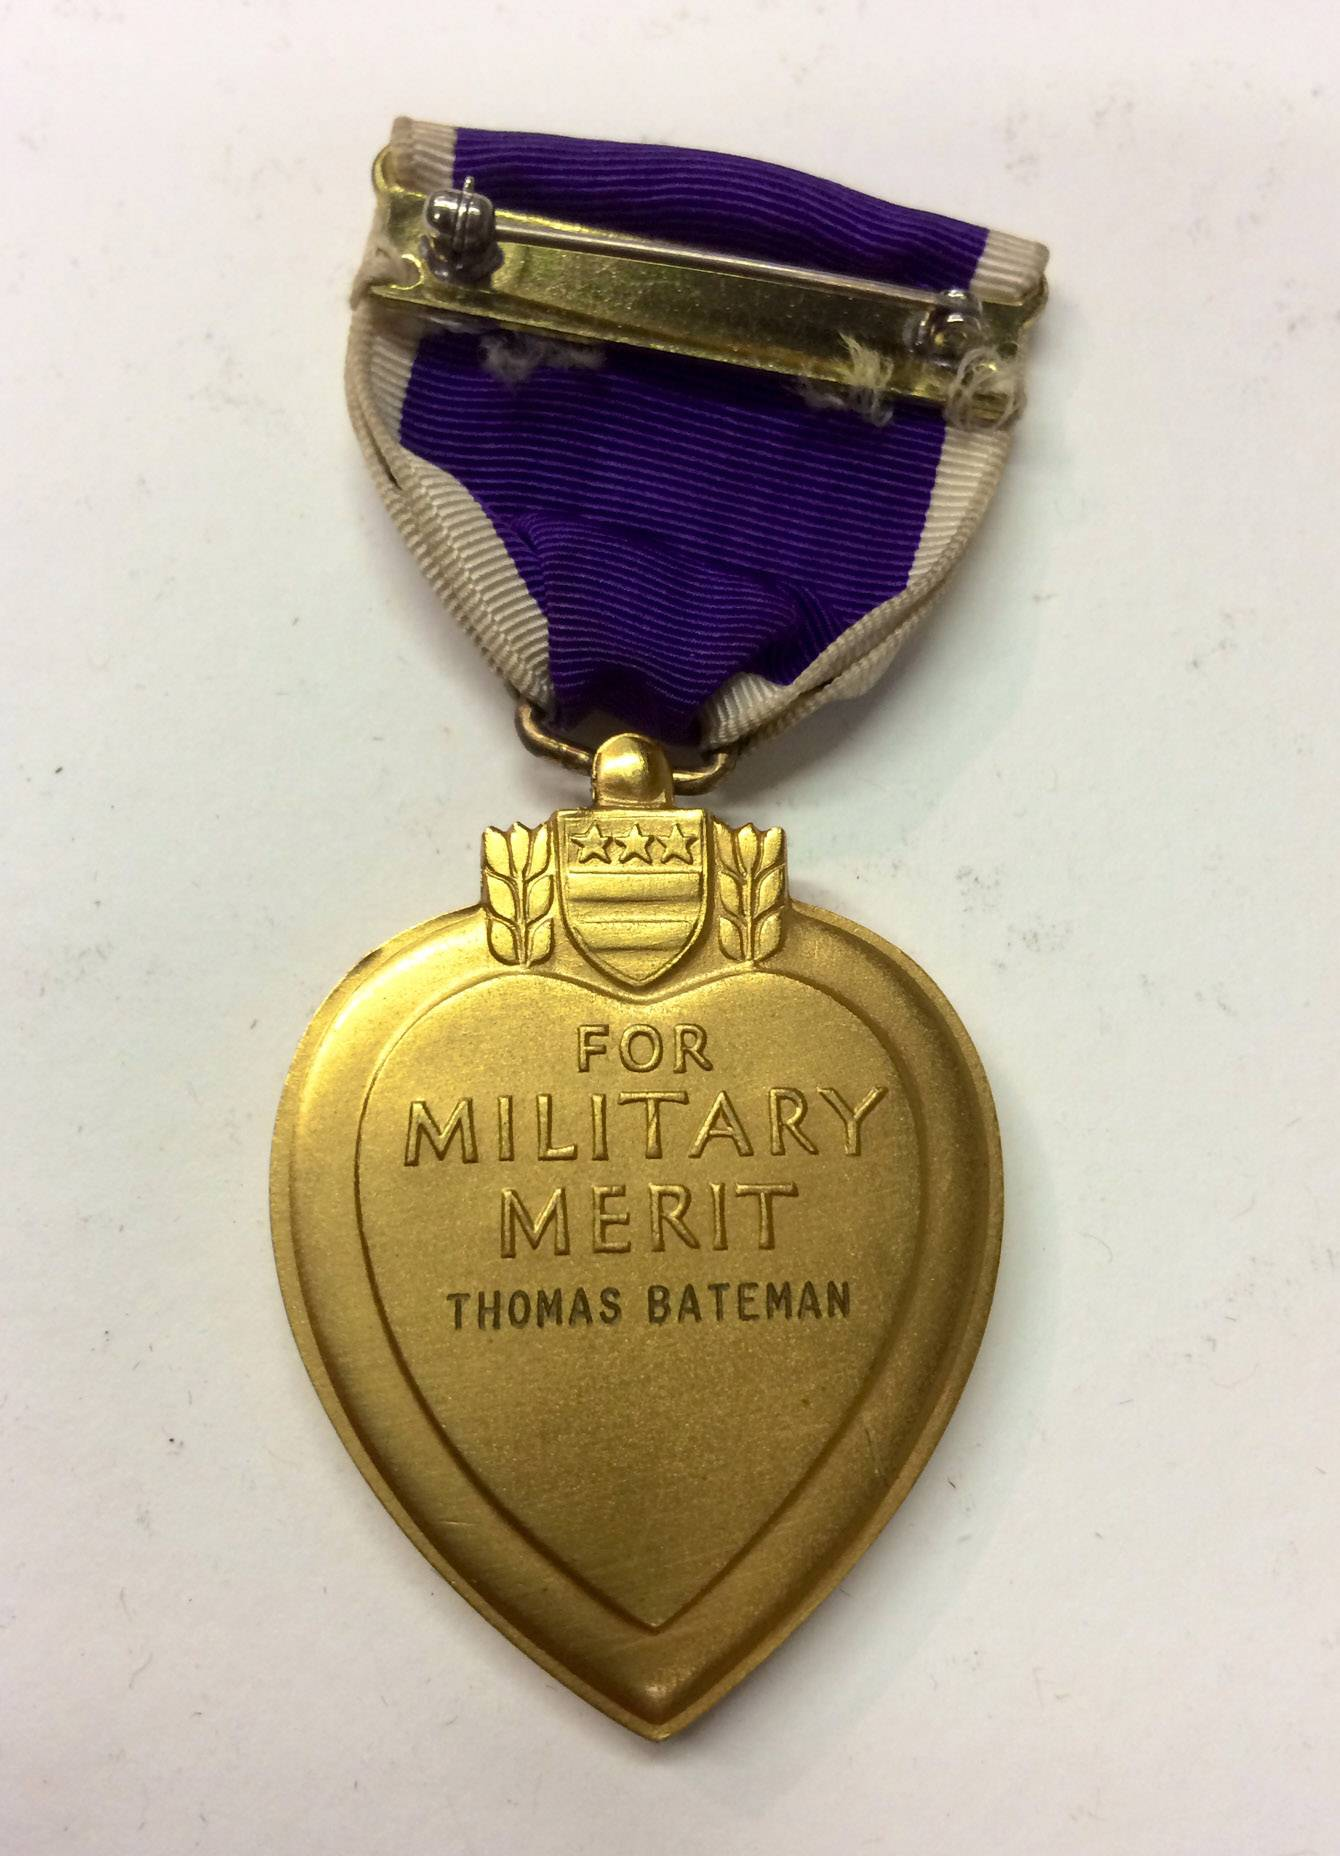 Thomas Bateman's Purple Heart medal.